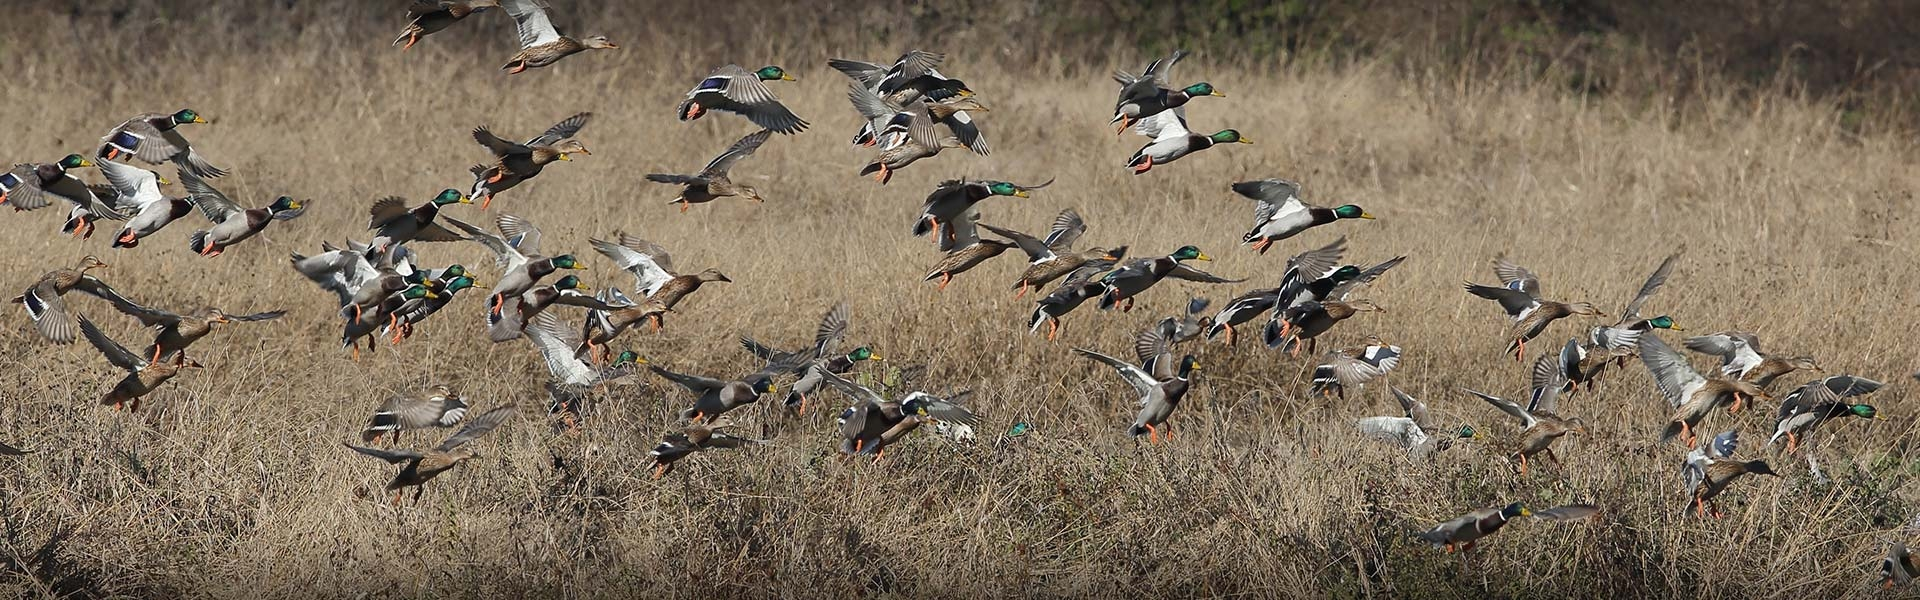 All Inclusive Waterfowl Hunting Packages in Alberta